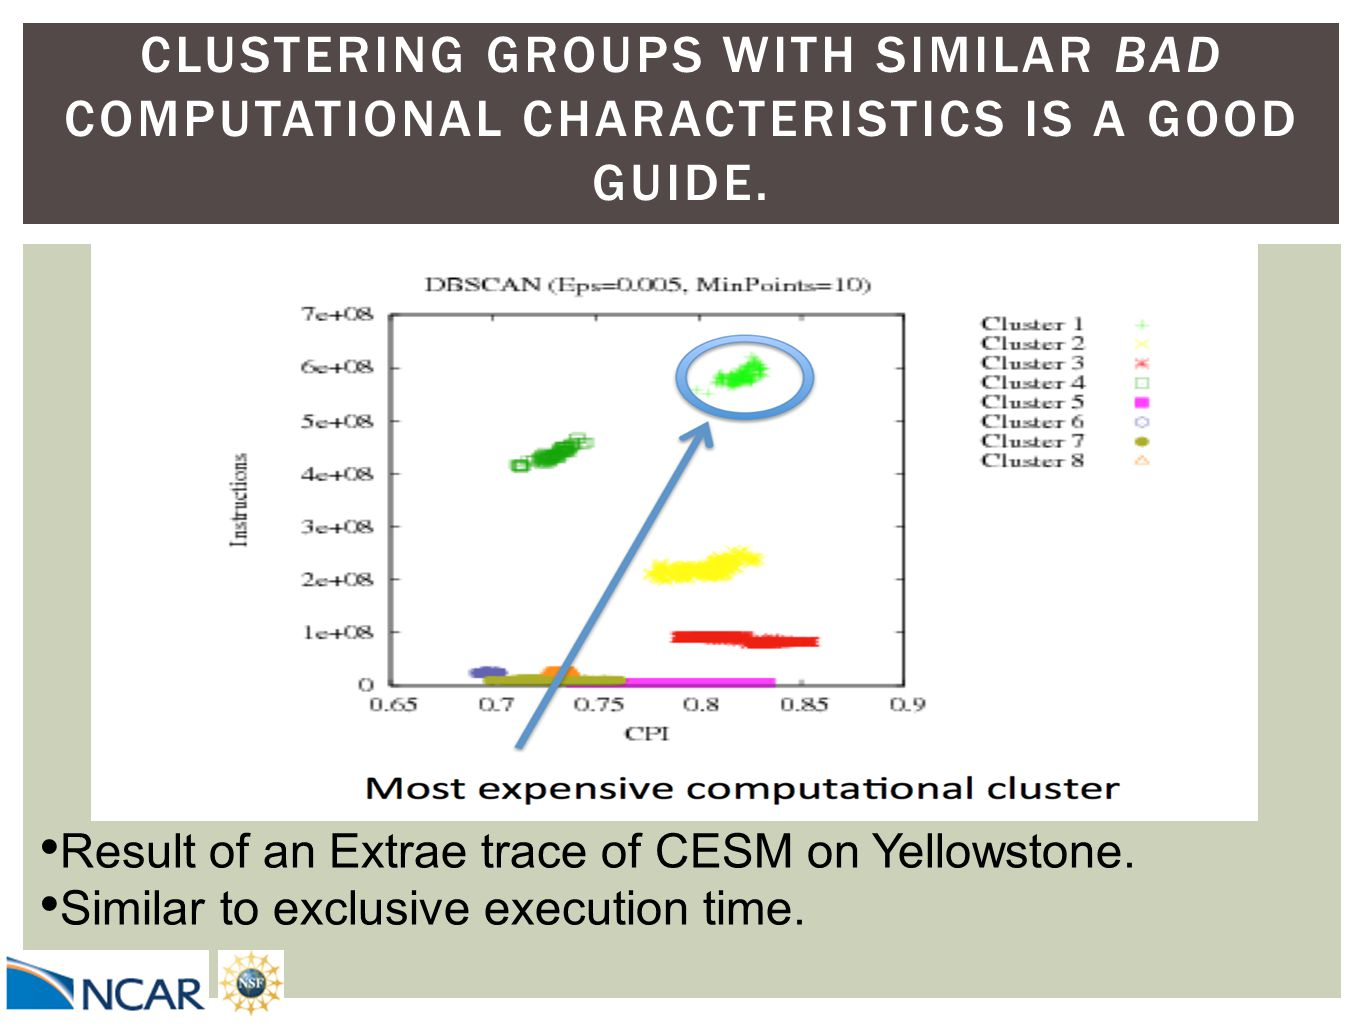 CLUSTERING GROUPS WITH SIMILAR BAD COMPUTATIONAL CHARACTERISTICS IS A GOOD GUIDE. Result of an Extrae trace of CESM on Yellowstone. Similar to exclusi